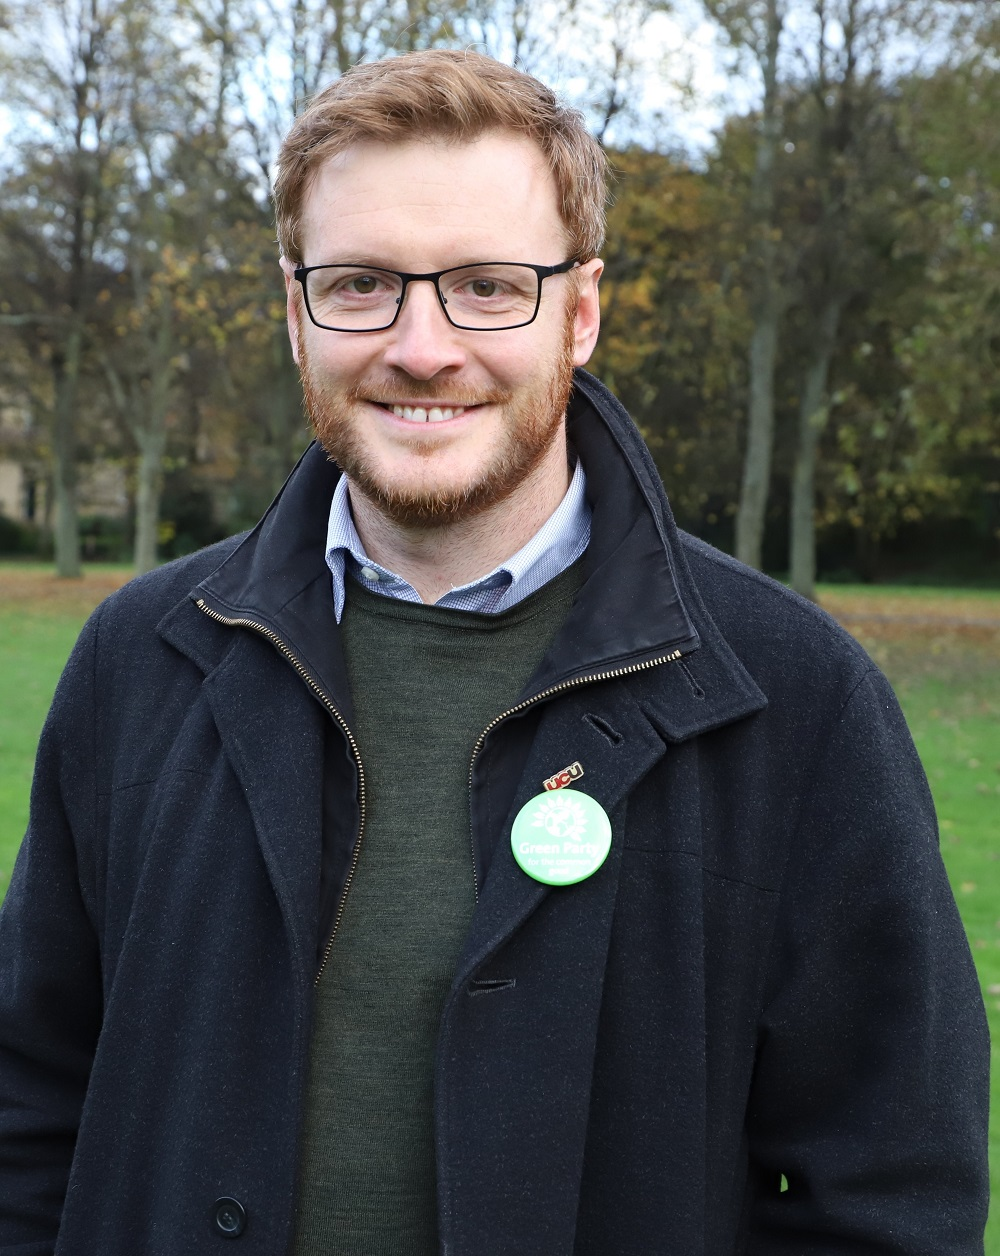 Alistair Ford - Candidate for Newcastle North